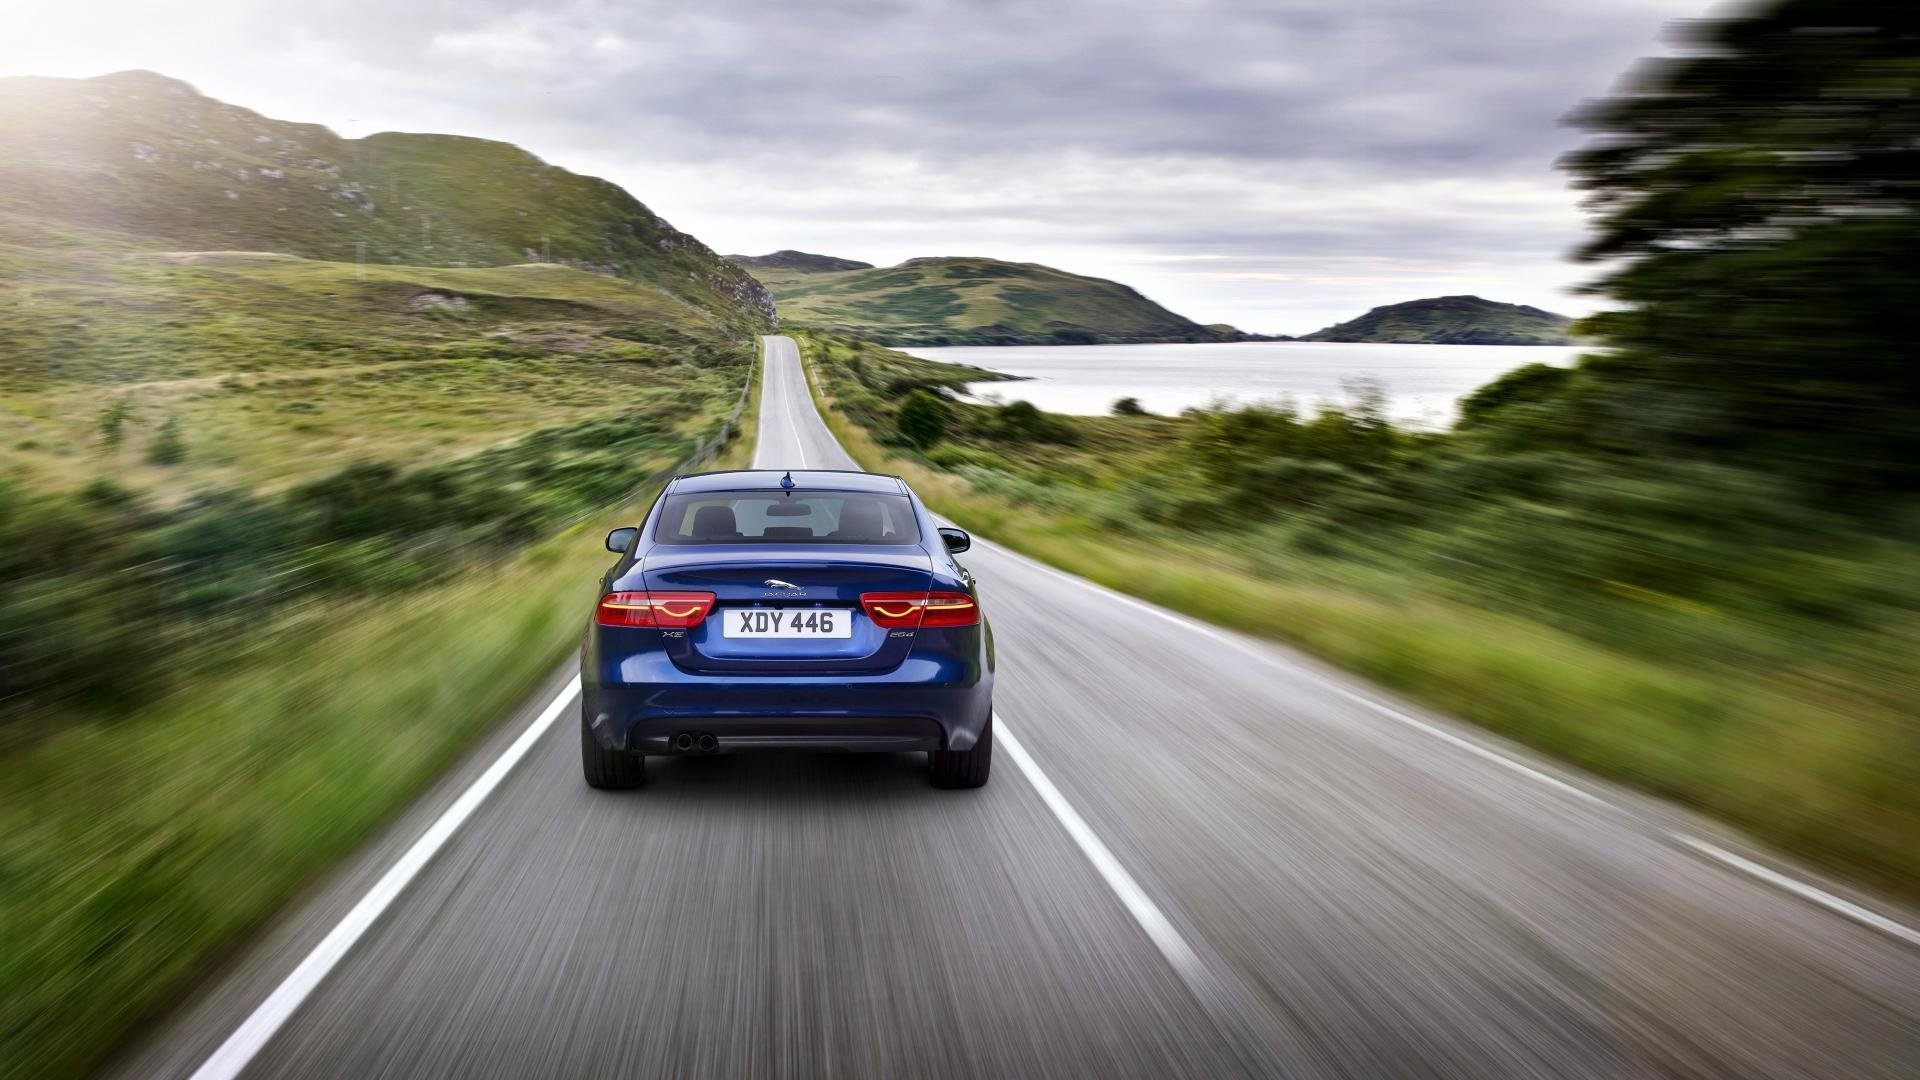 Free Jaguar XE high quality wallpaper ID:260222 for hd 1080p desktop